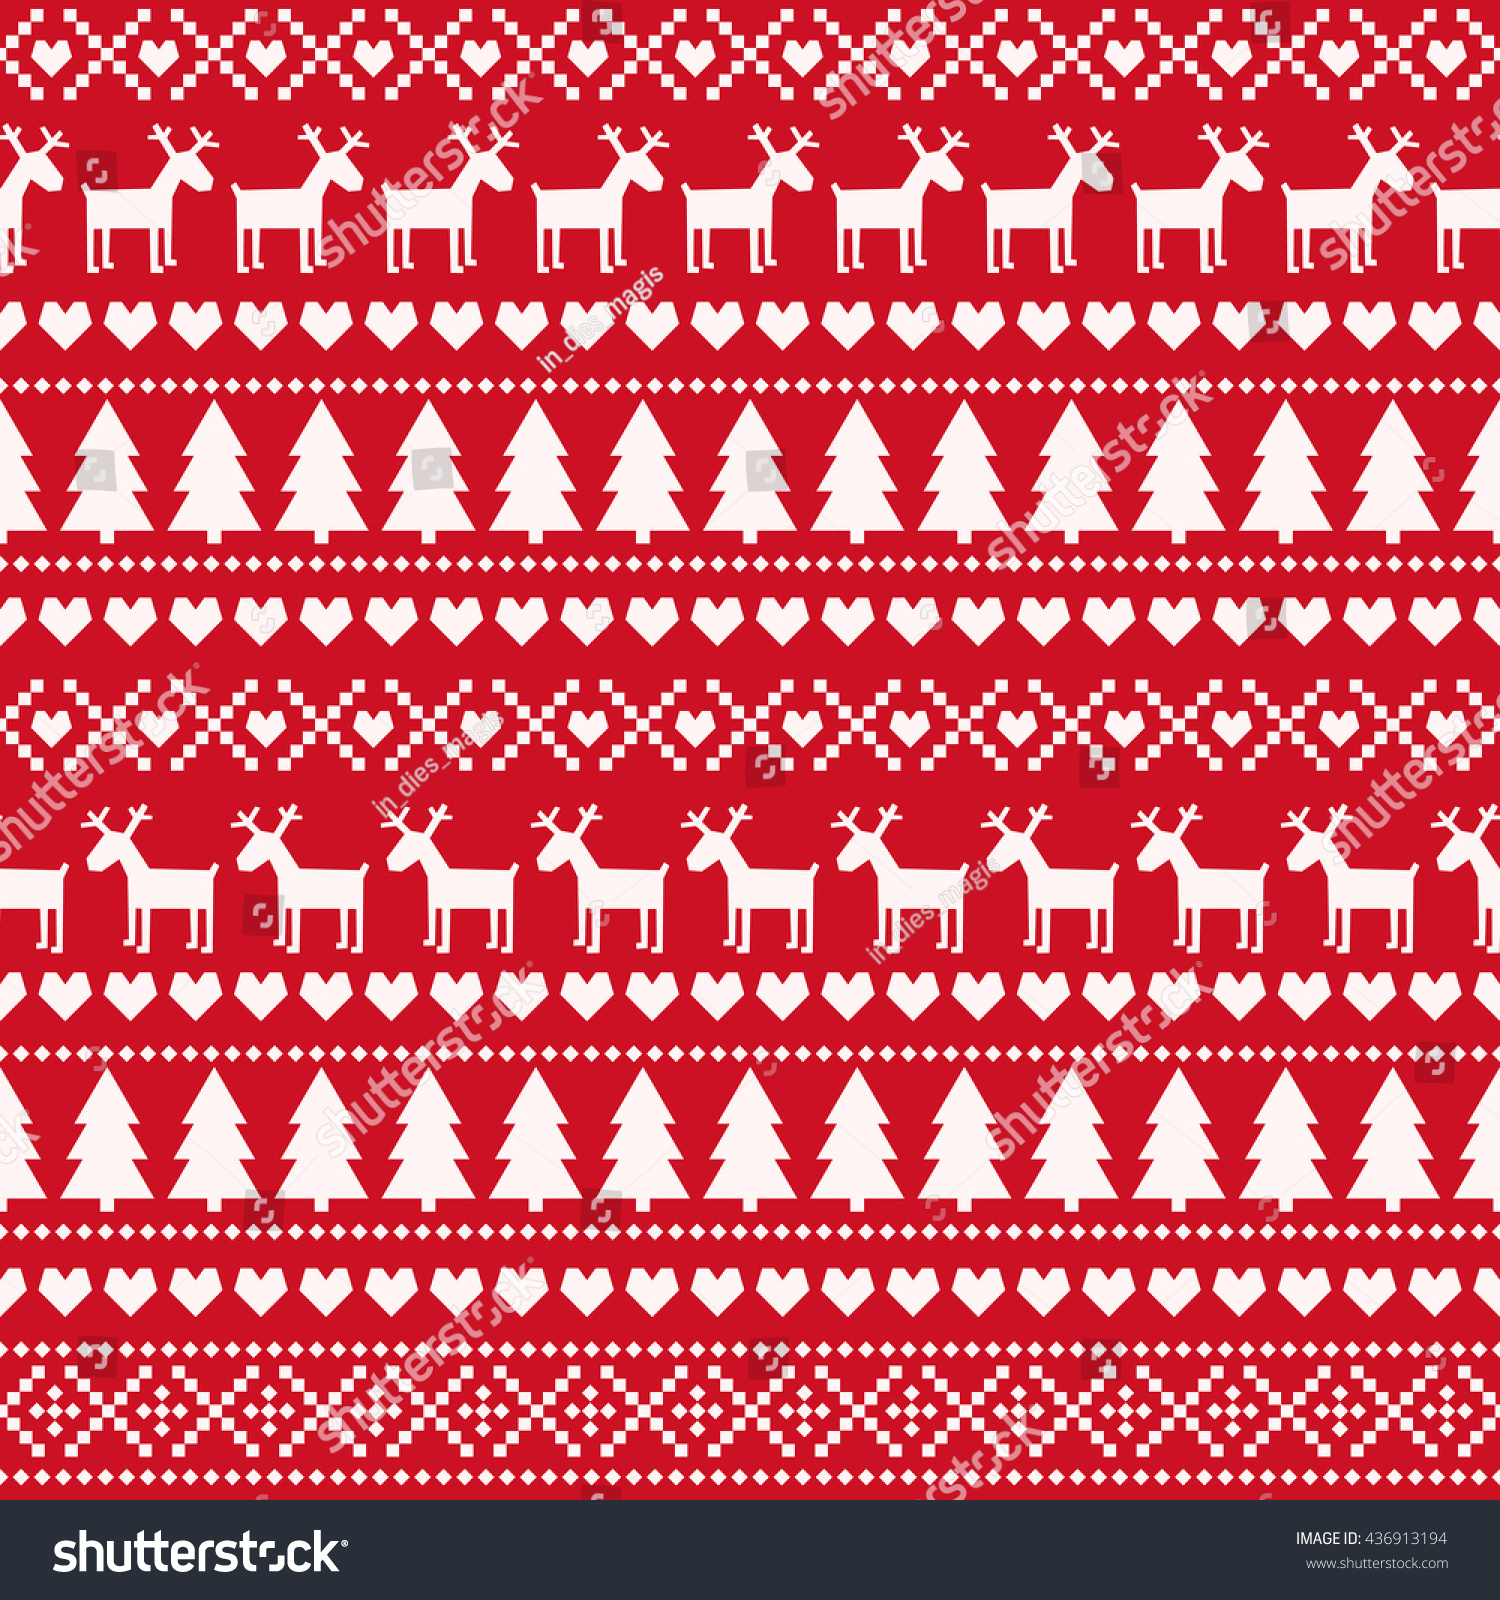 Seamless fir tree scandinavian pattern textile background wrapping - Christmas Seamless Pattern Card Scandinavian Sweater Style Cute Christmas Background Xmas Trees